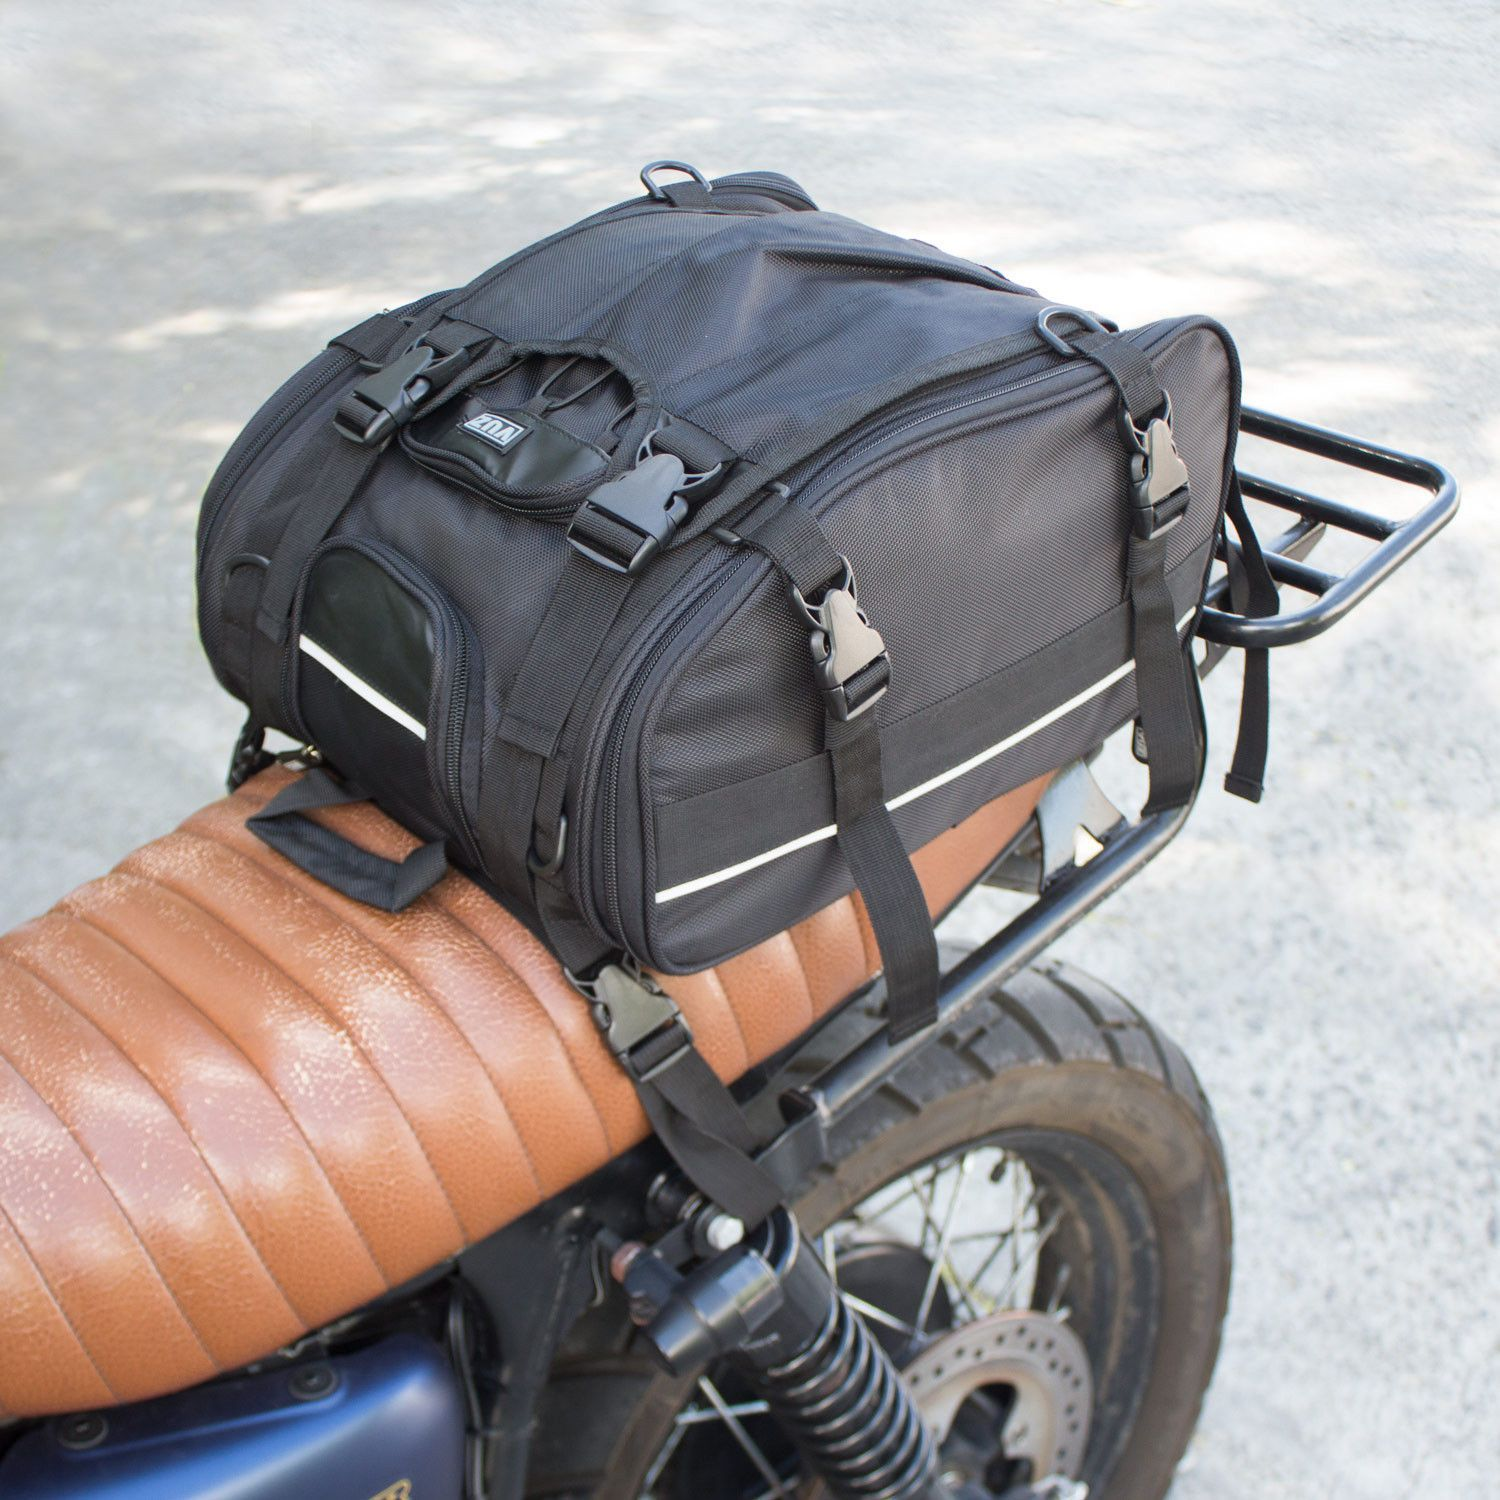 35fa7e72bd17 Expand Your Mind The VUZ Moto Expandable Tail Bag was built with utility in  mind to be a versatile and useful travel companion in any condition.